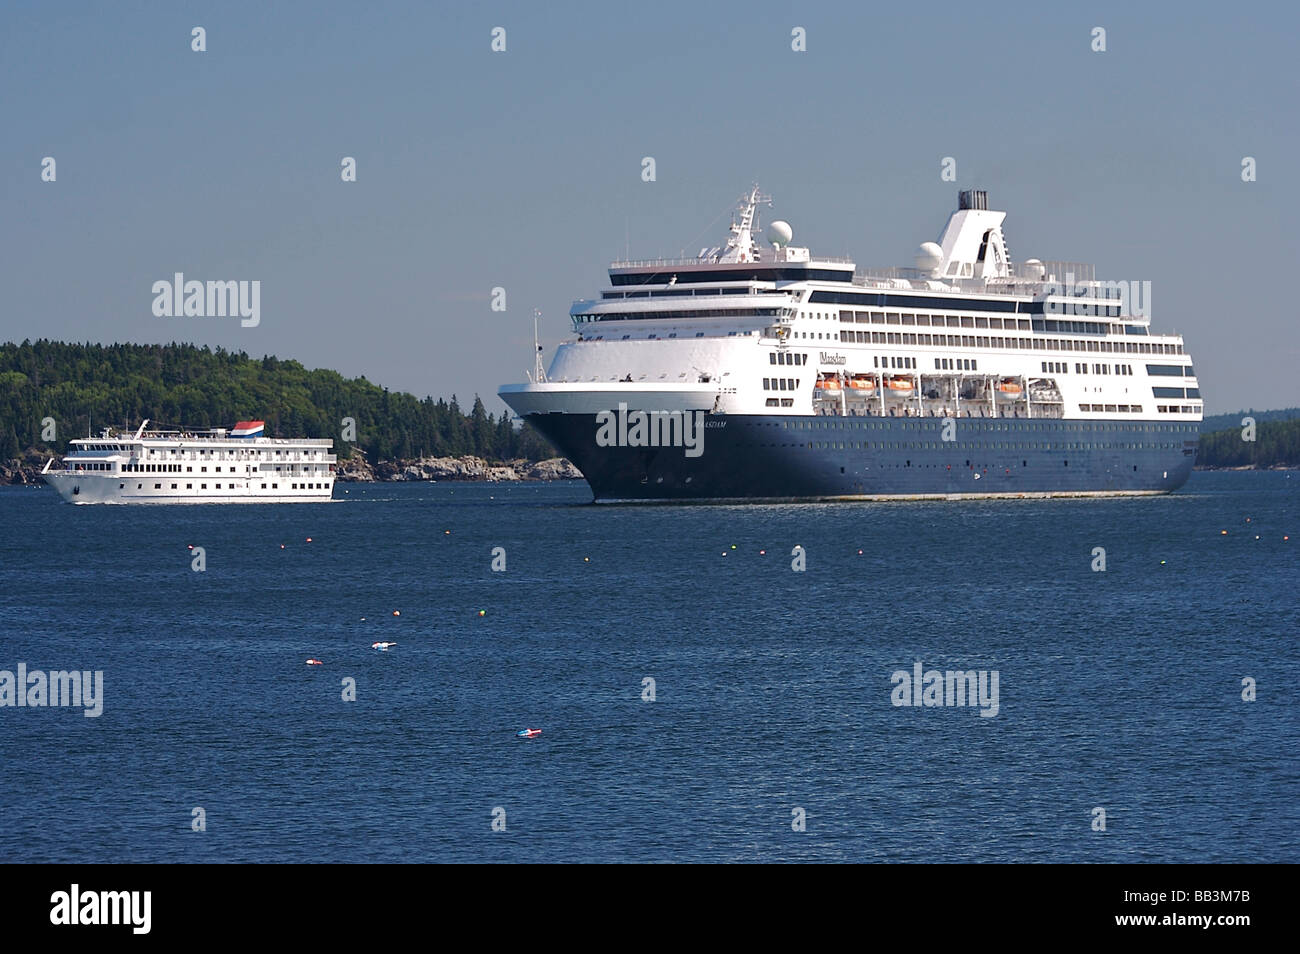 North America USA Maine Bar Harbor Holland Americas Maasdam - American star cruise ship